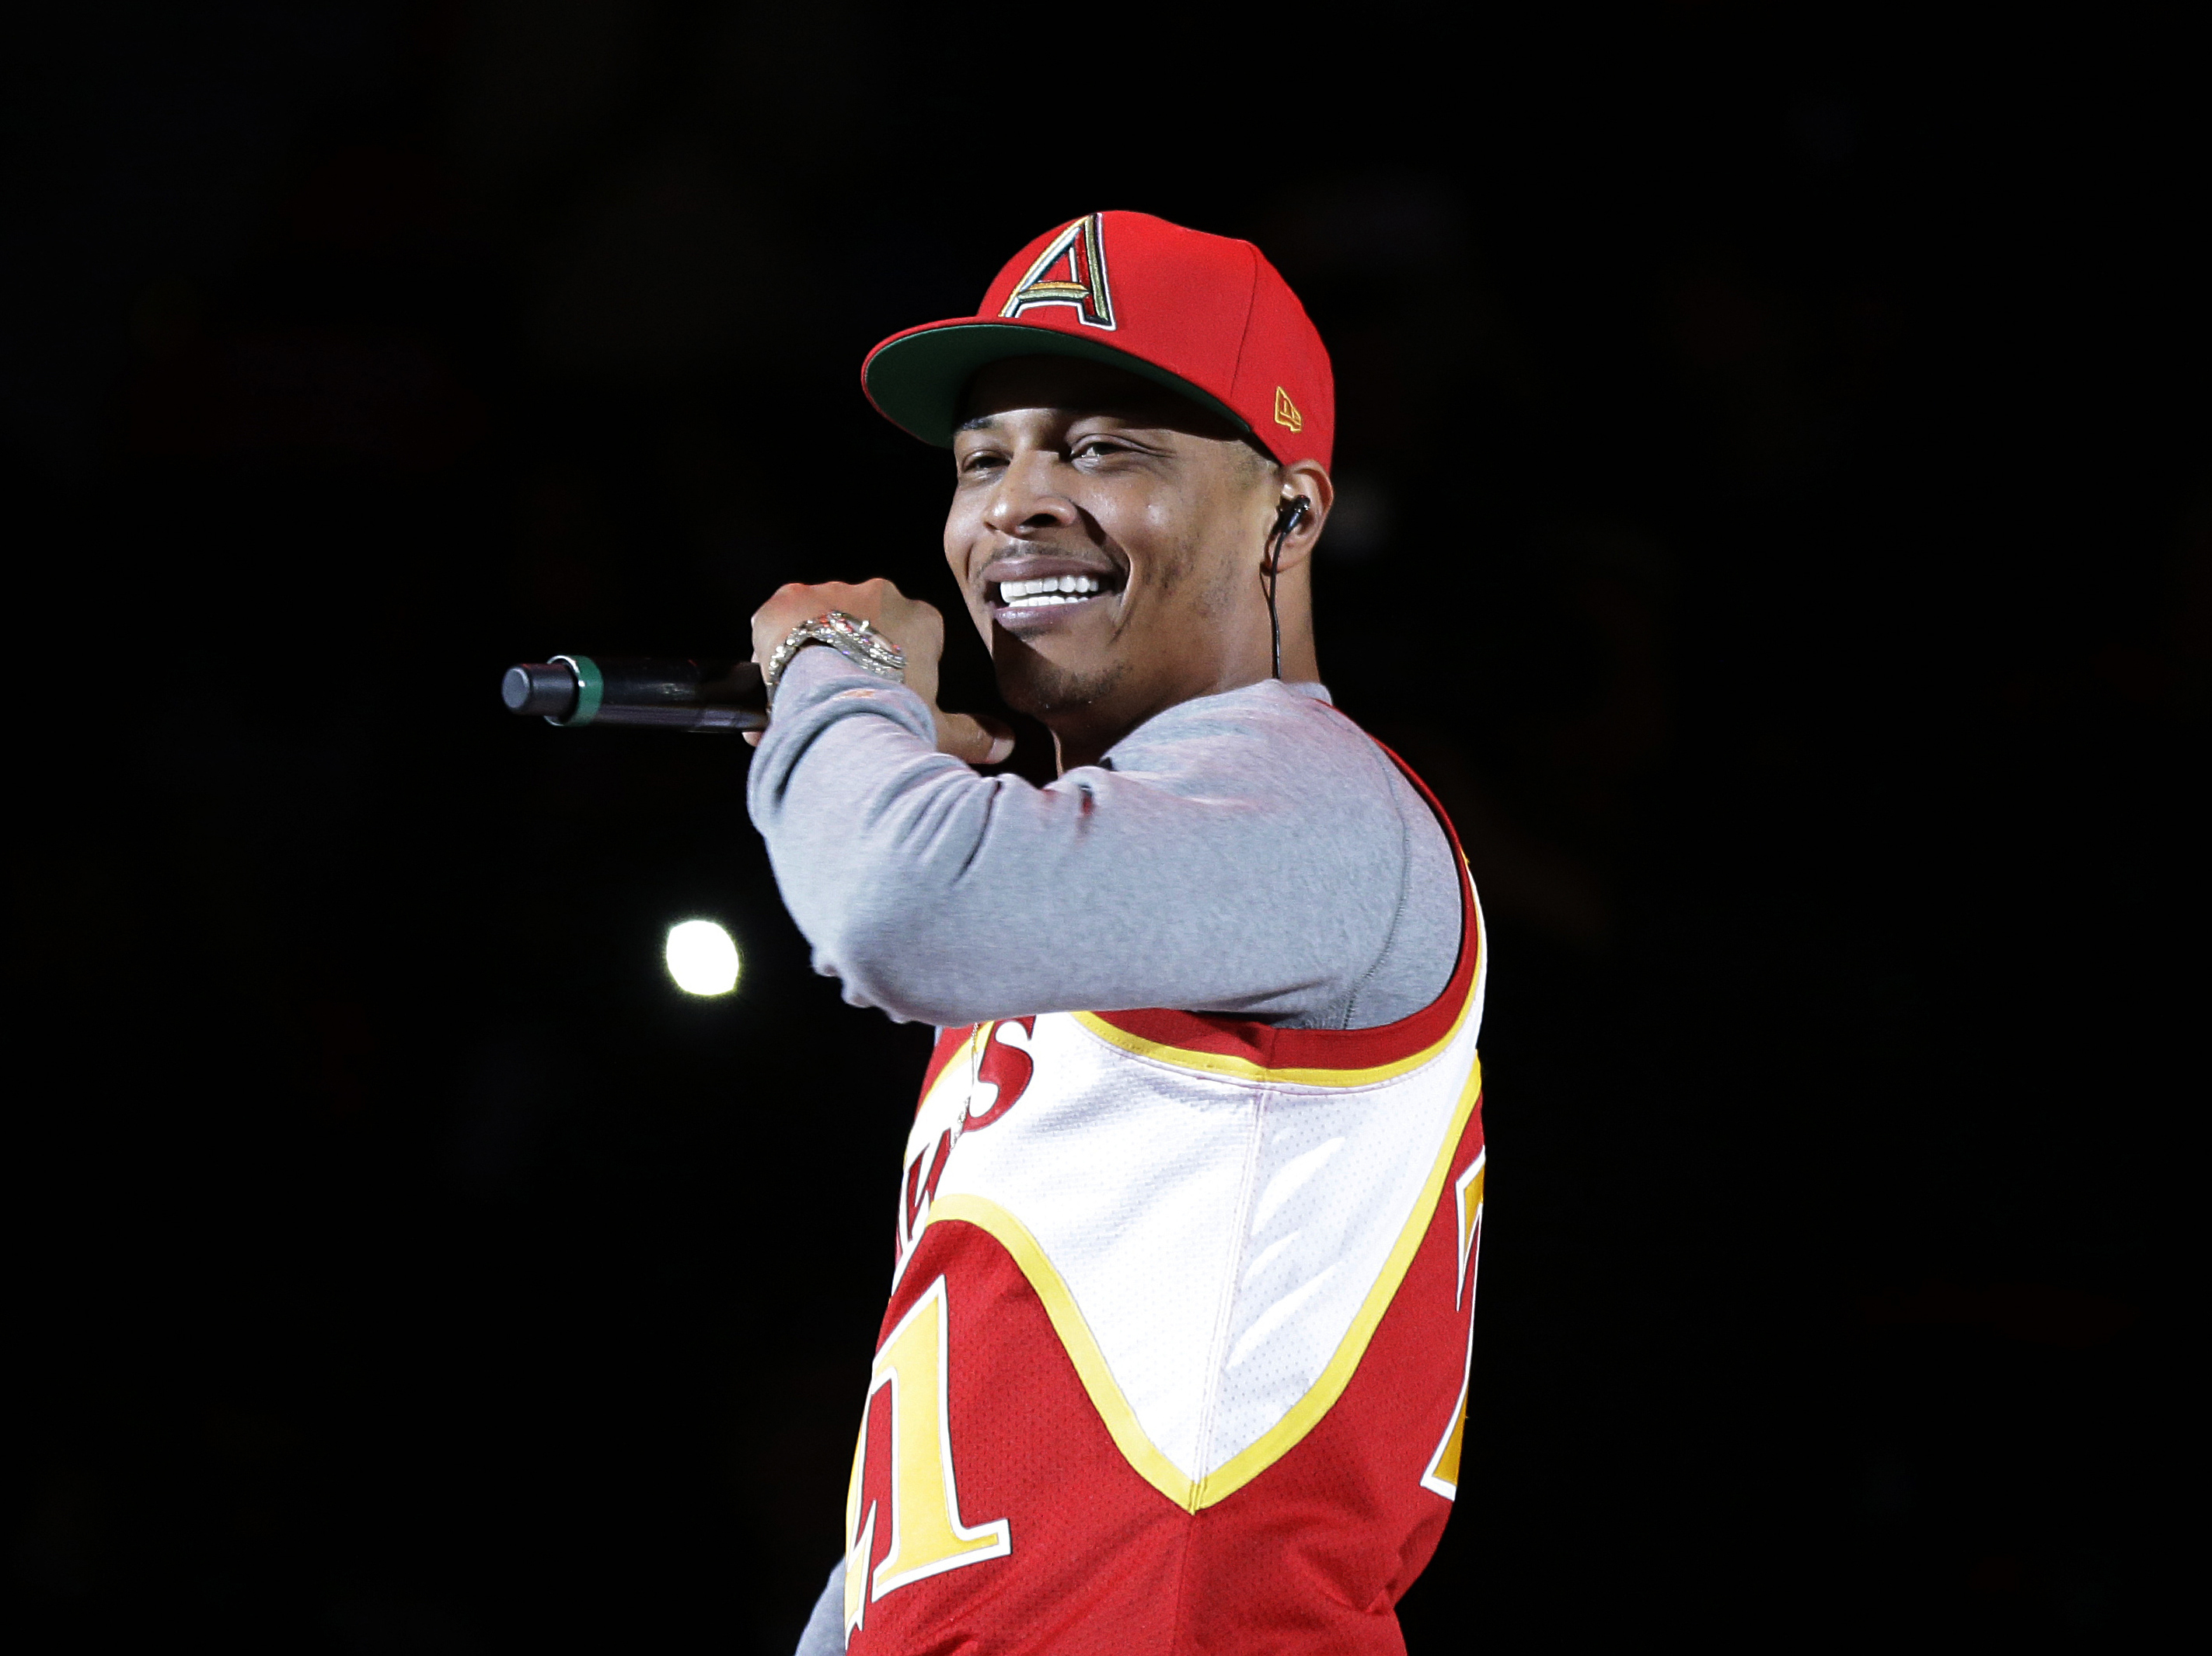 FILE - In this Nov. 1, 2014, file photo, rapper T.I. performs before the start of an NBA basketball game between the Indiana Pacers and the Atlanta Hawks in Atlanta. A New York lawmaker wants to ban tests aimed at determining virginity in response to remarks by the rapper earlier this month in which he said he has a gynecologist check his daughter's hymen annually.